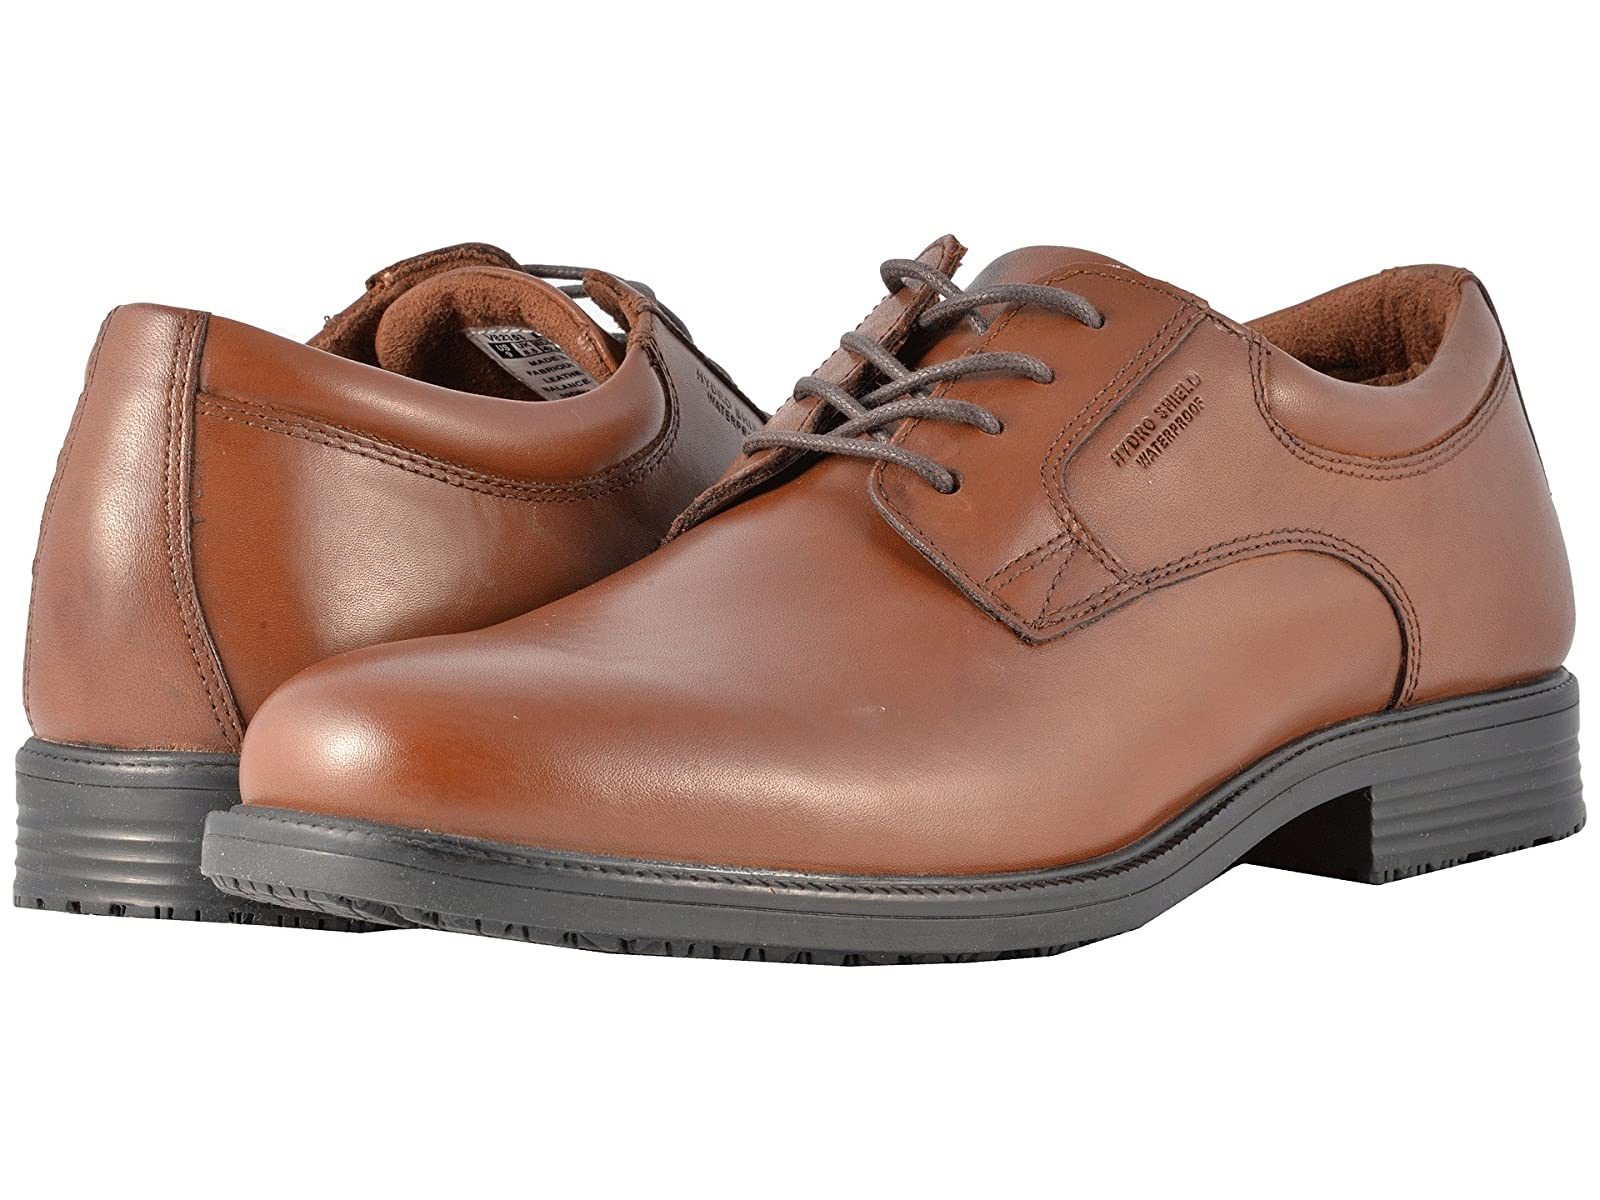 Rockport Essential Details Waterproof Plain Toe OxfordCheap and distinctive eye-catching shoes